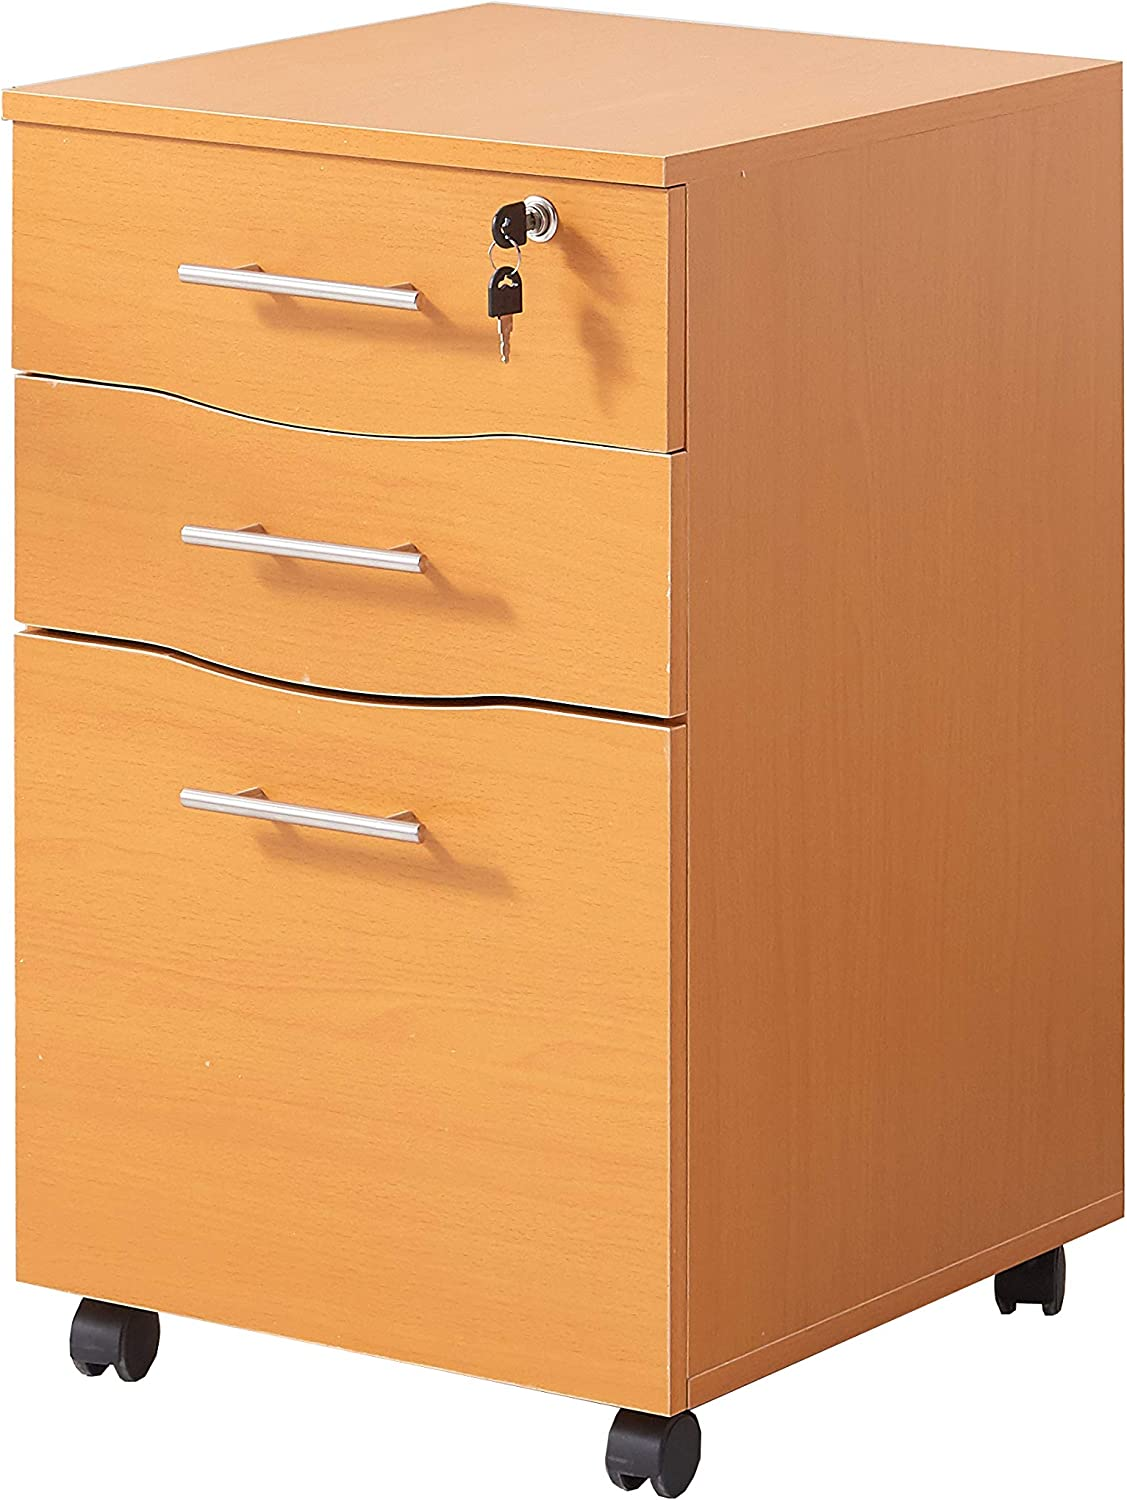 Amazon.com: MMT Mobile Filing Cabinet Lockable 33 Storage Drawers